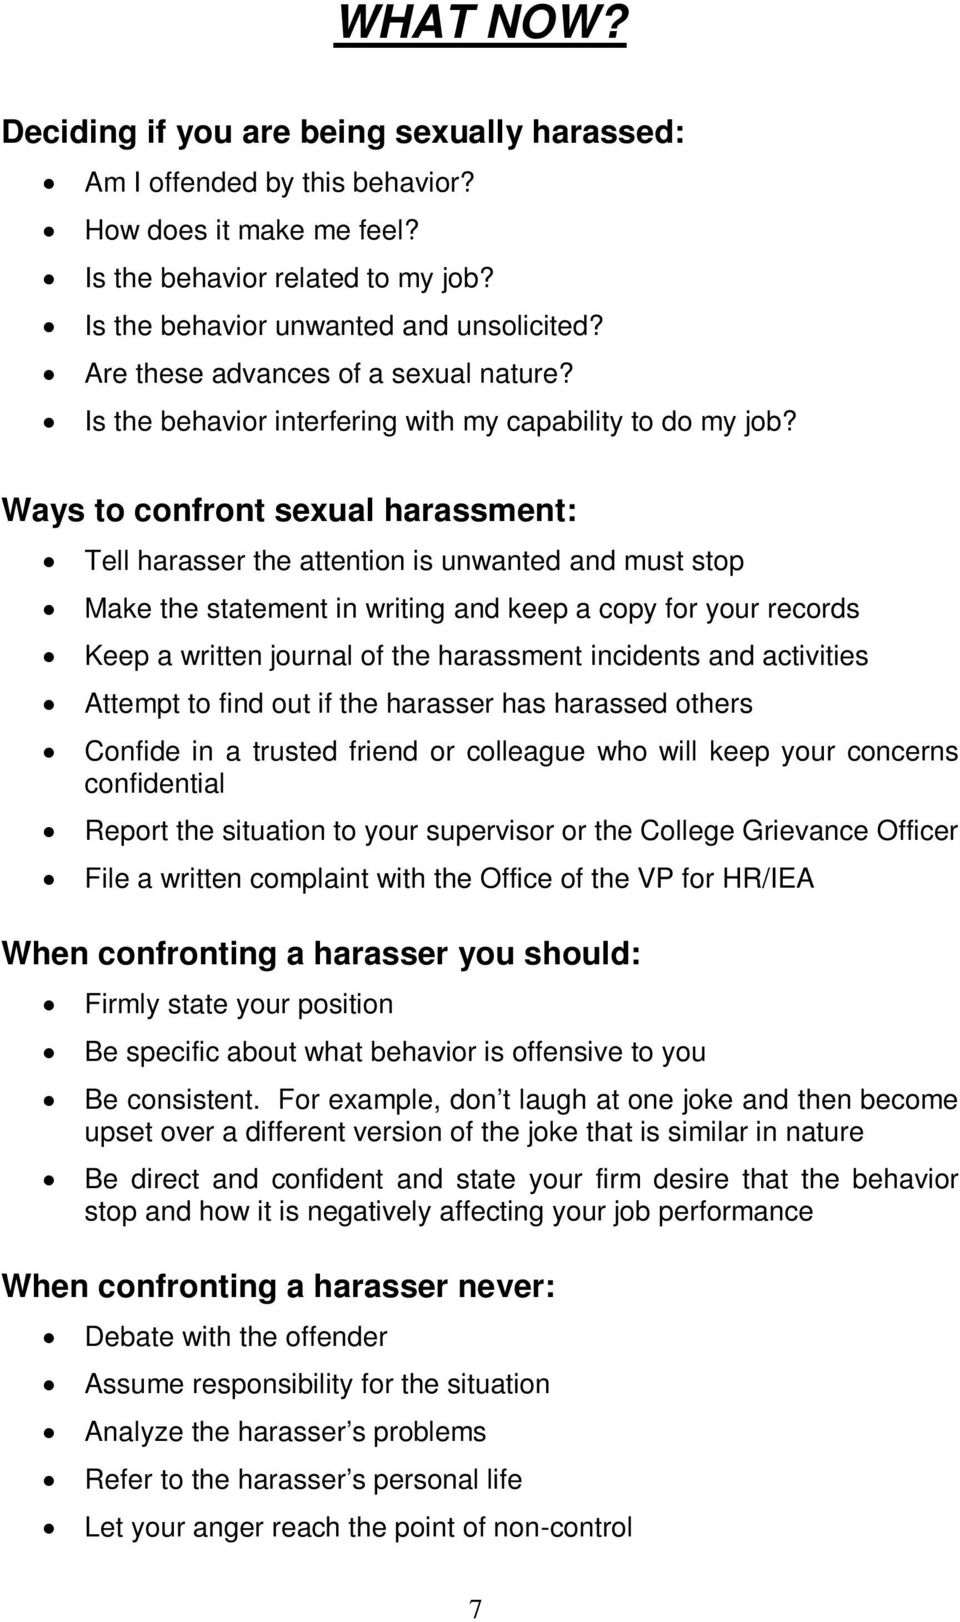 Ways to confront sexual harassment: Tell harasser the attention is unwanted and must stop Make the statement in writing and keep a copy for your records Keep a written journal of the harassment